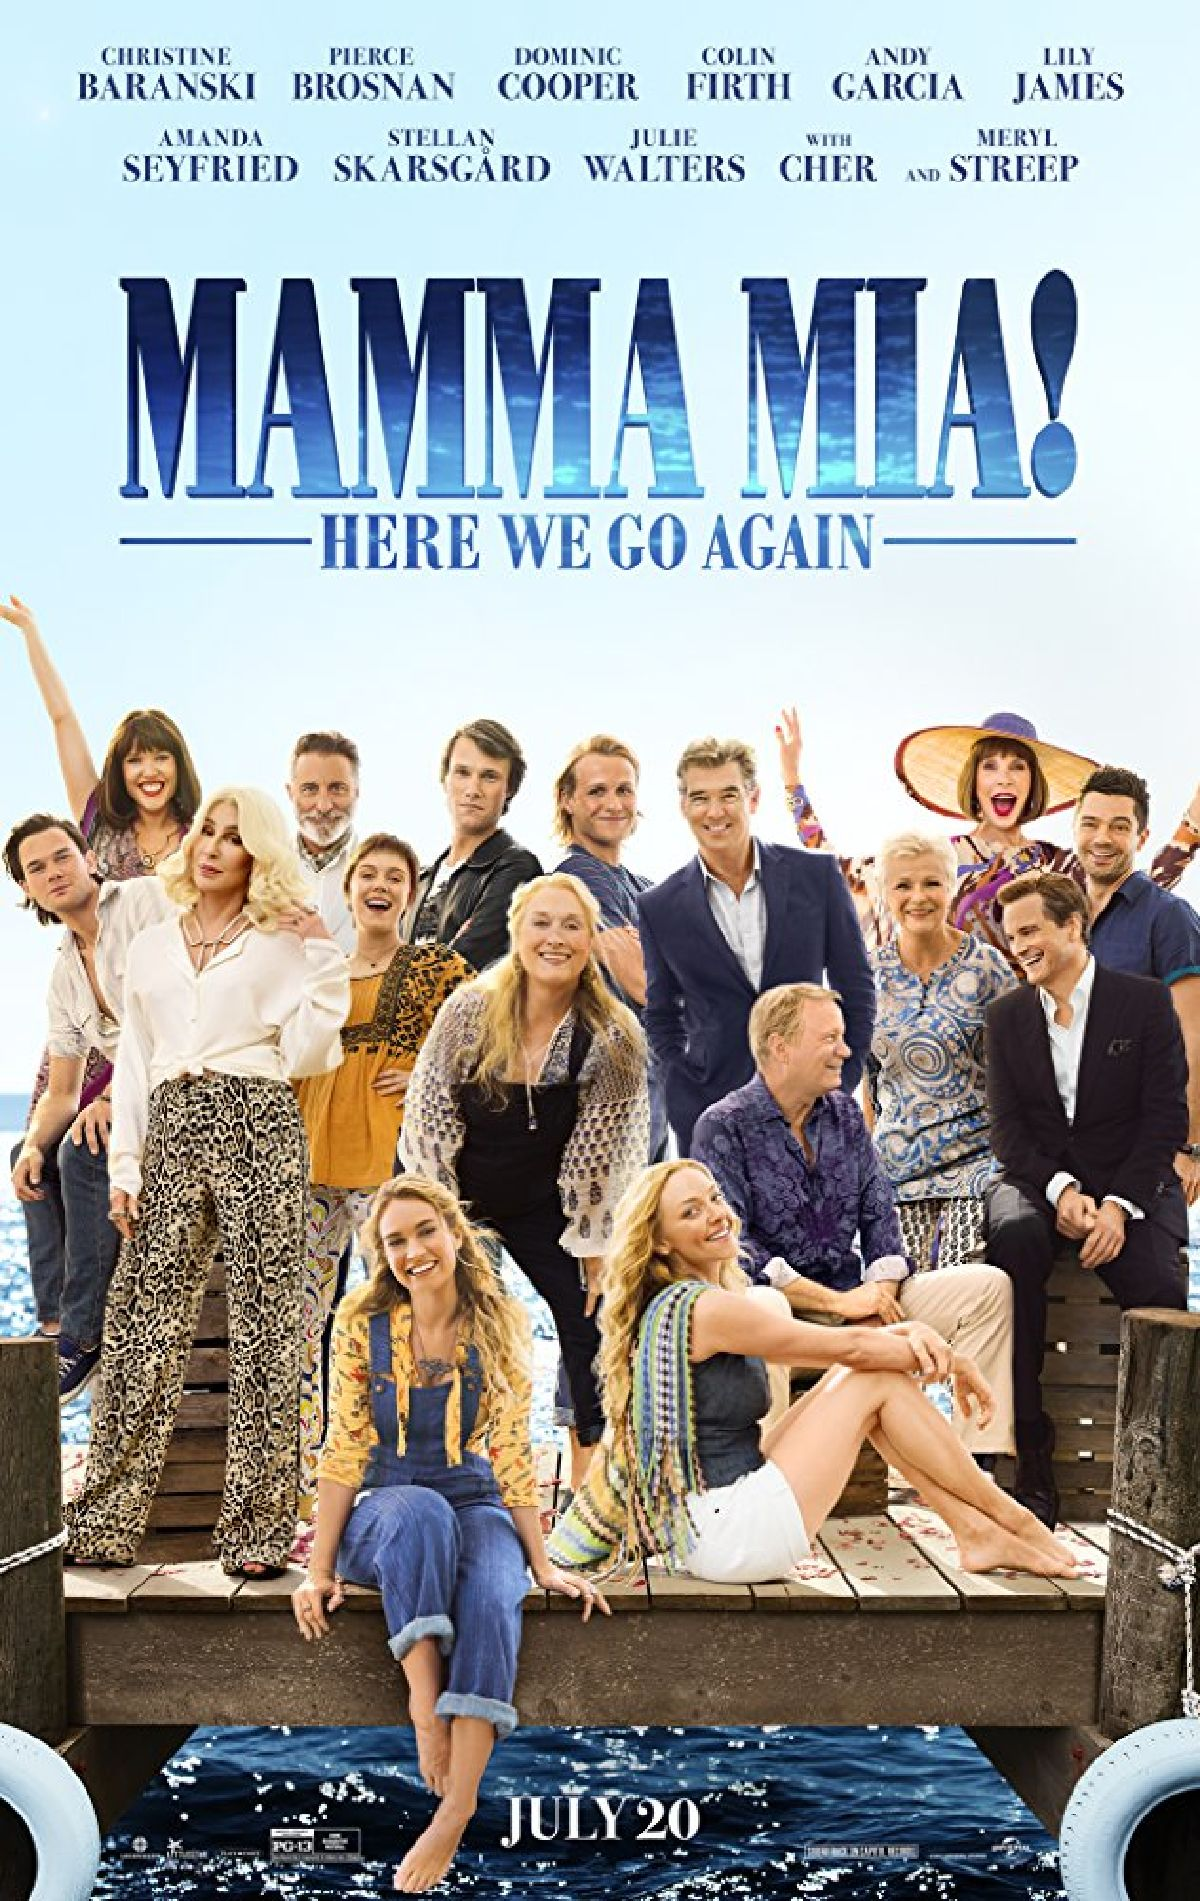 'Mamma Mia! Here We Go Again' movie poster